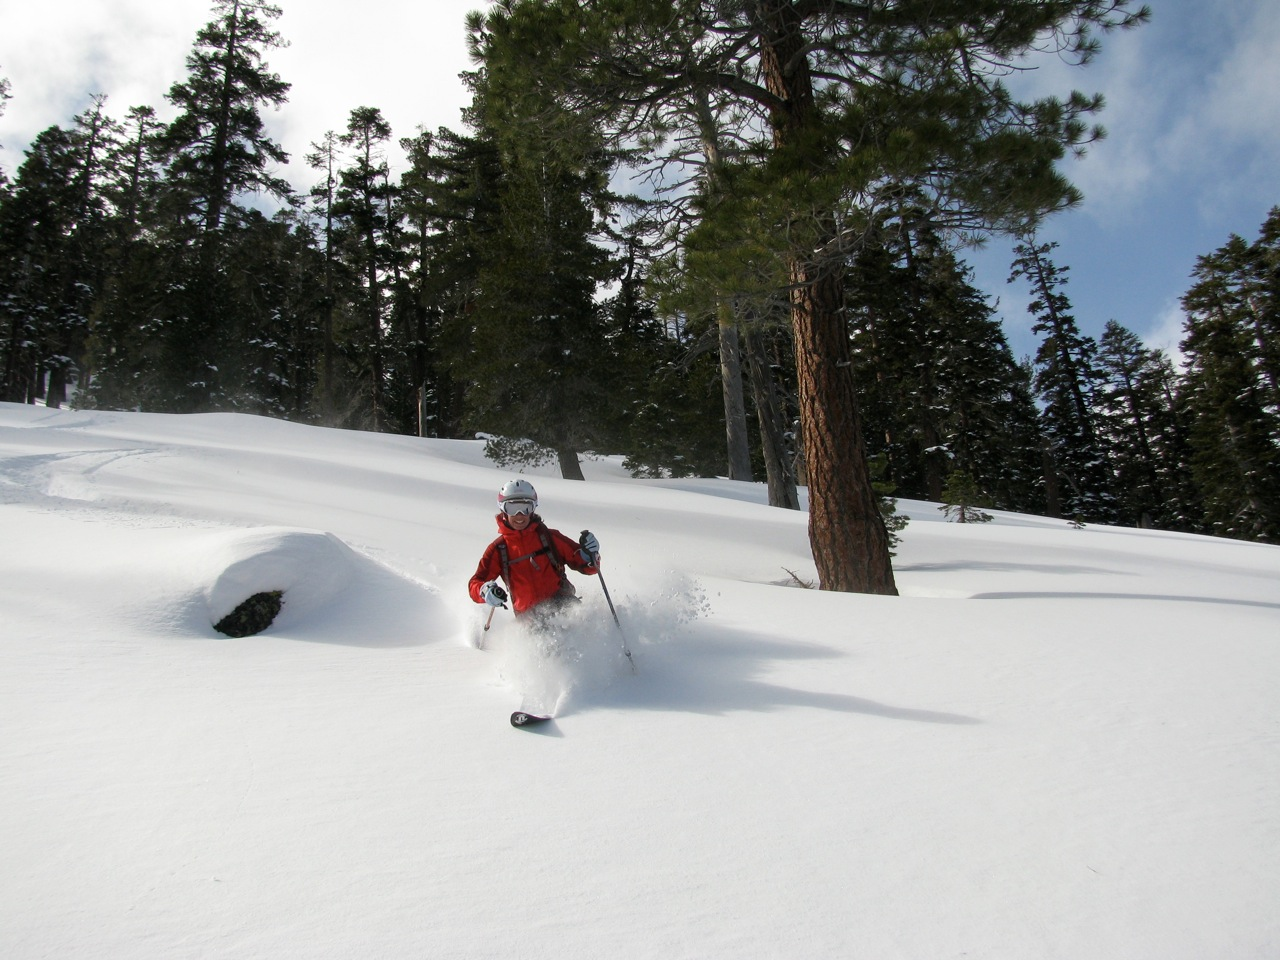 Are you a woman who likes to backcountry ski or ride?